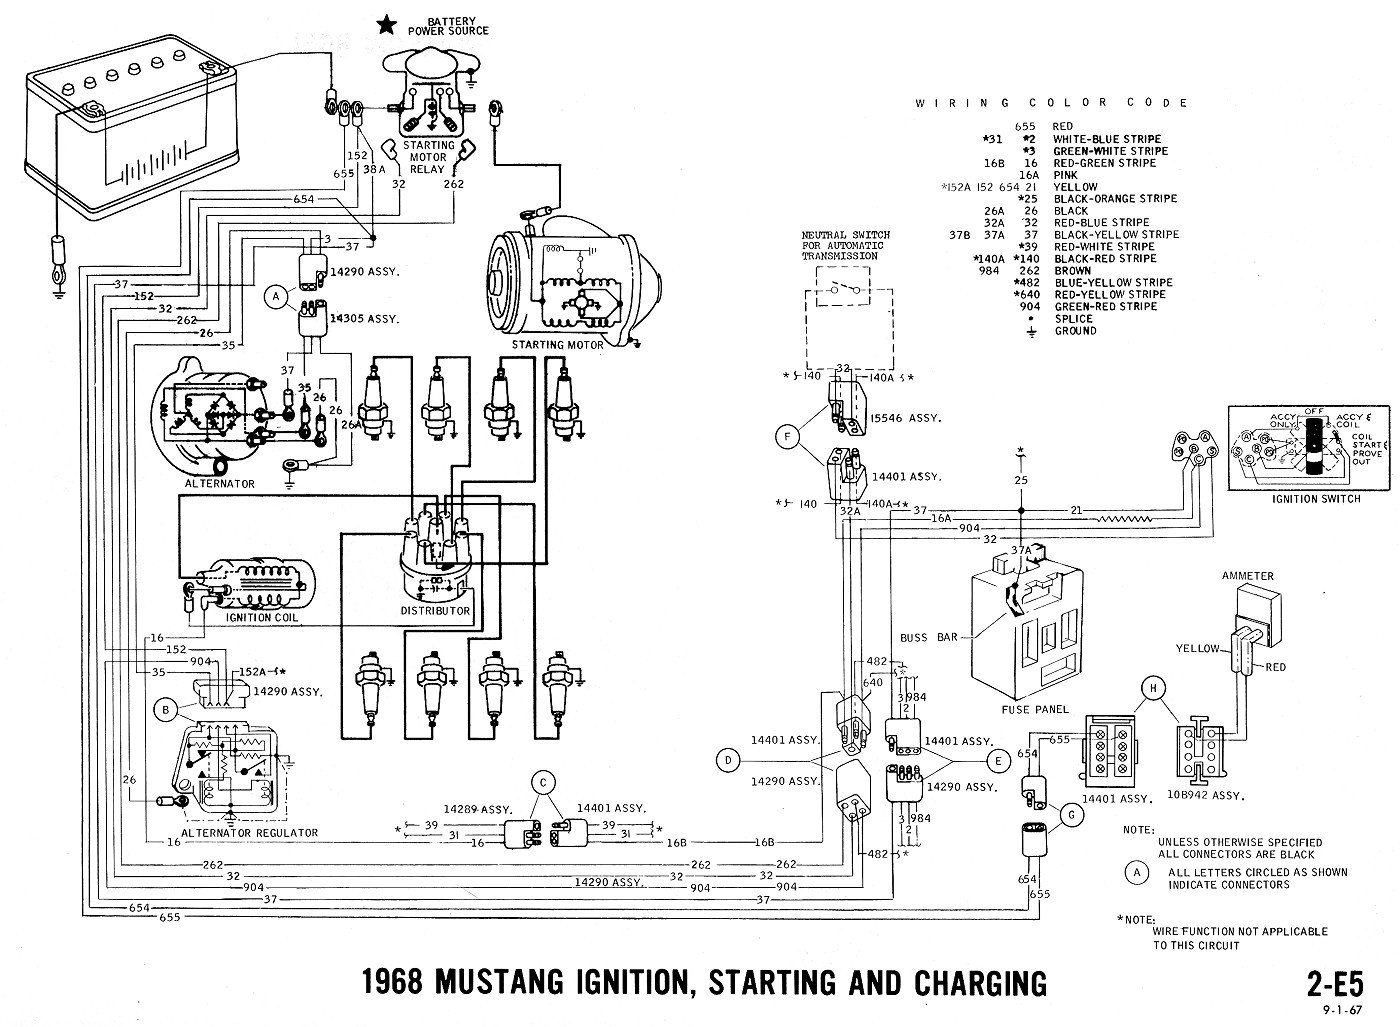 Wiring Diagram For 1972 Ford Mustang | Wiring Diagram on 73 mustang a c diagram, 72 mustang fuel tank, 1973 ford mustang heater hose diagram, 69 chevelle heater diagram, 72 mustang ignition switch, 72 chevelle dash wire diagram, 72 mustang radio wiring, 1969 mustang heater diagram, 1969 mustang engine compartment wire diagram, 72 mustang tires, mustang vacuum diagram, 72 mustang fuel pump, 72 mustang fan belt, 73 gran torino solenoid diagram, 72 mustang parts,